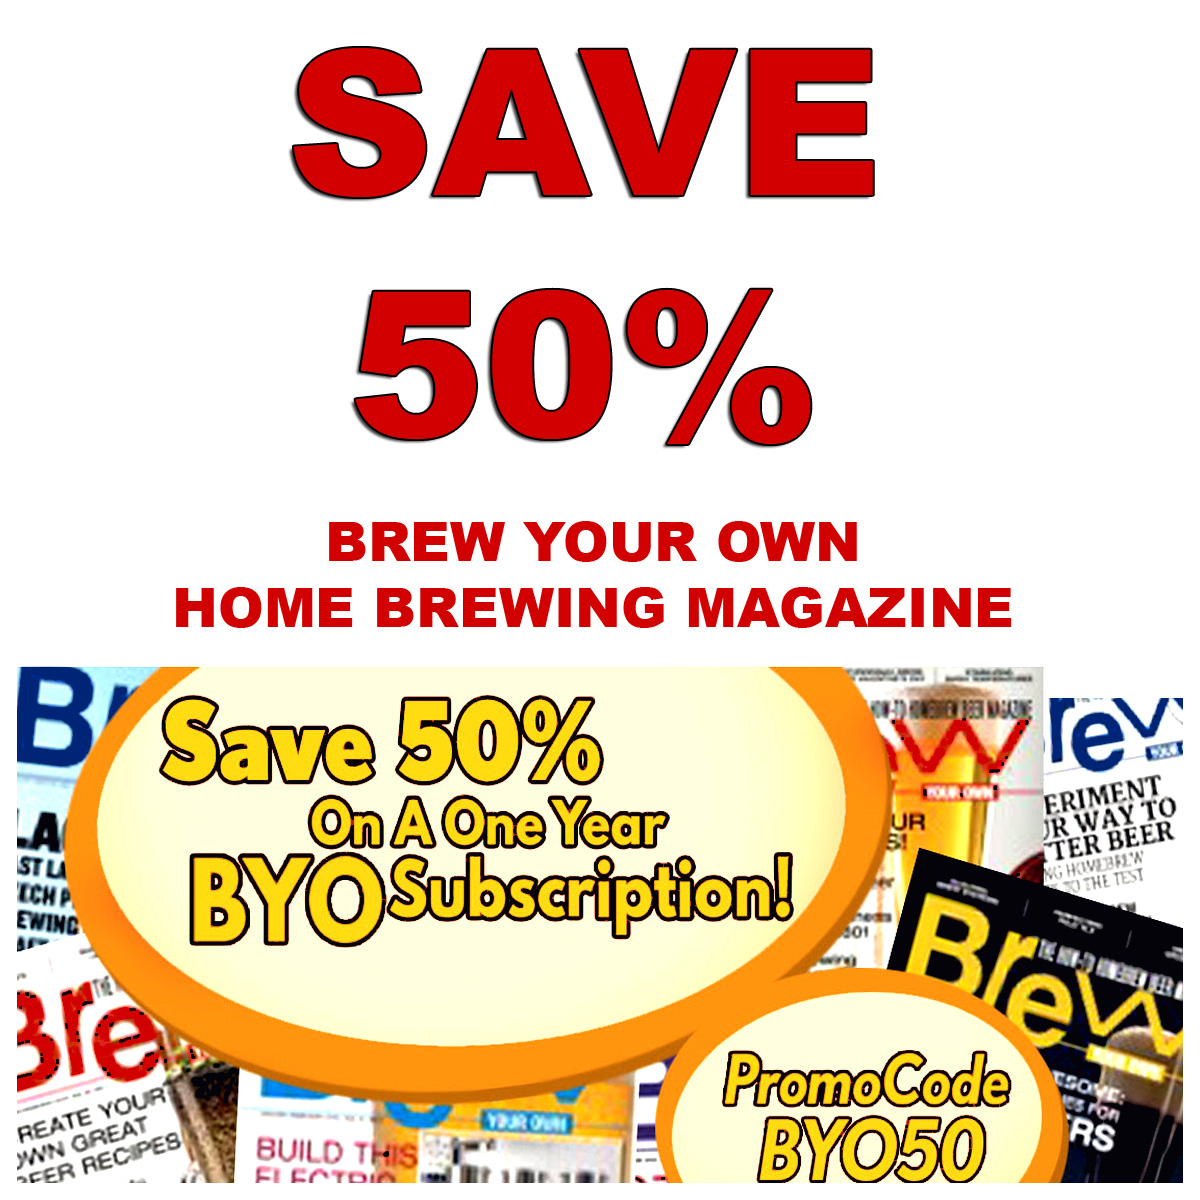 MoreBeer Save 50% On A Subscription to Brew Your Own Home Brewing Magazine More Beer Promo Code Coupon Code